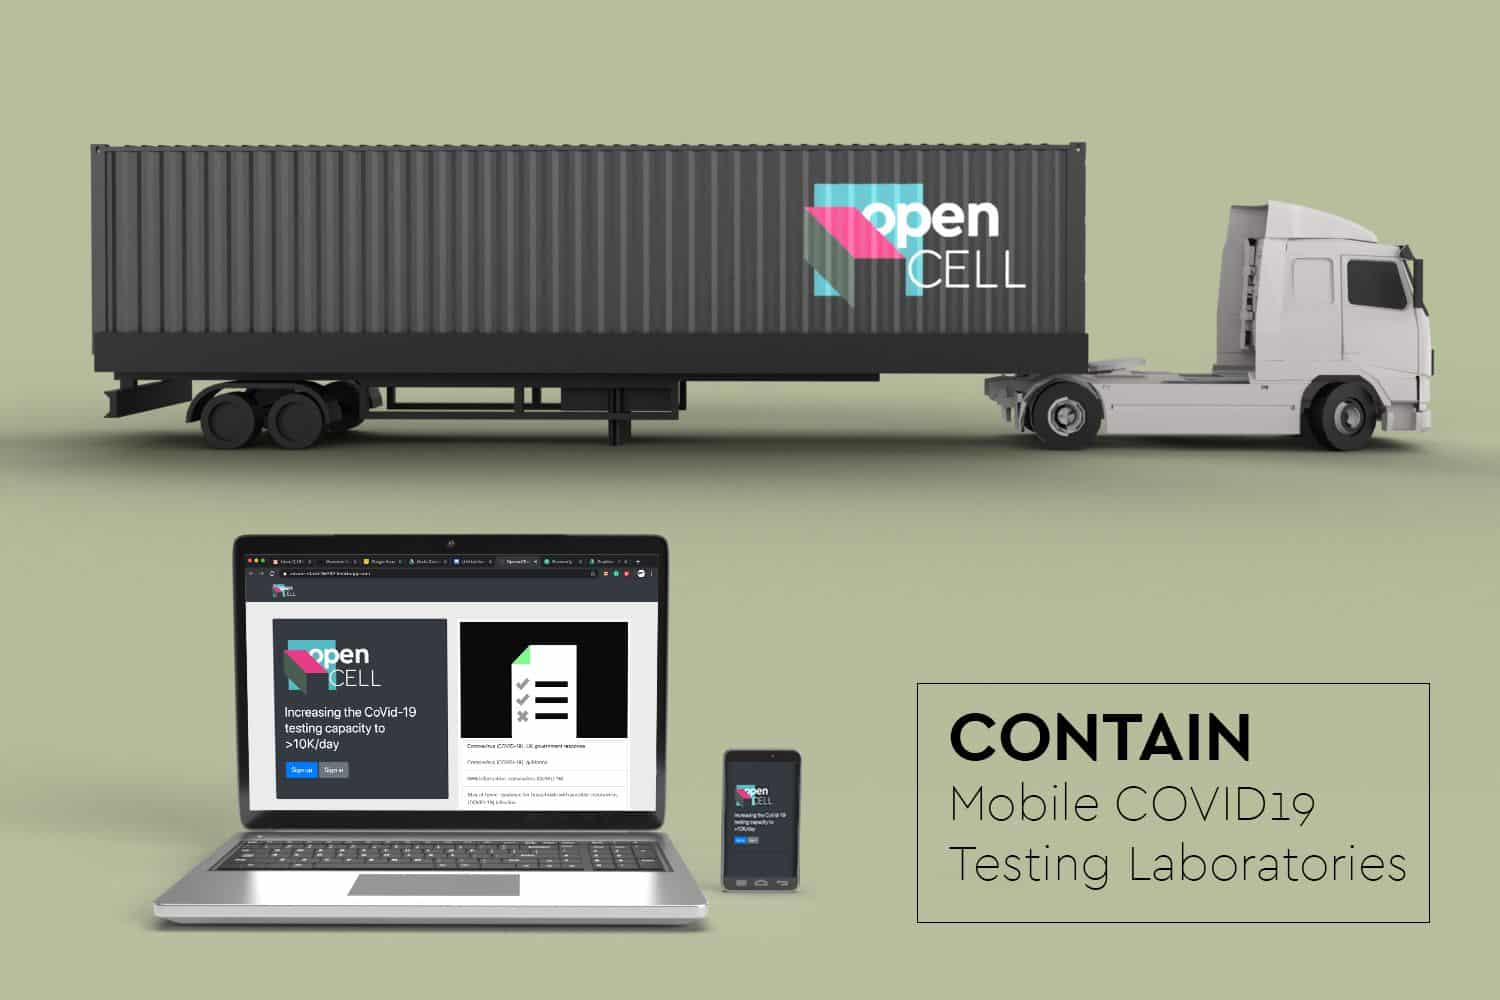 Figure showing shipping container on a truck deploying COVID19 testing labs